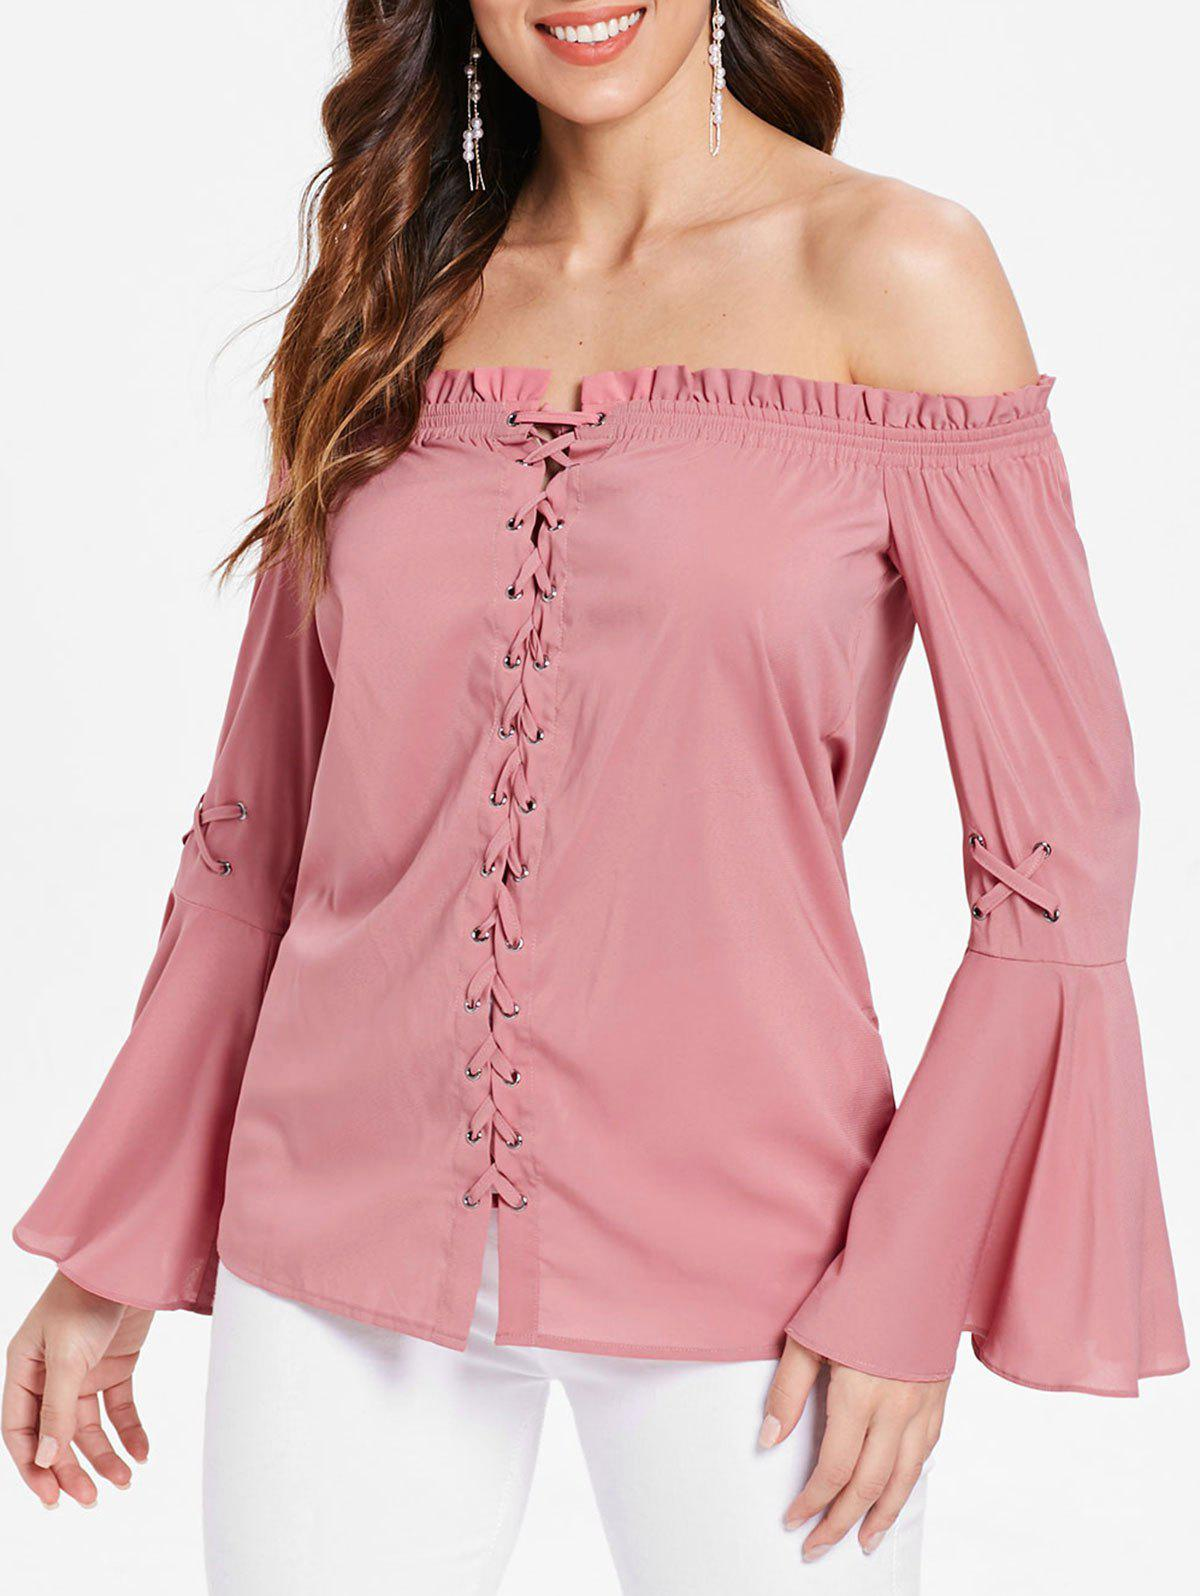 Long Sleeve Lace Up Ruffled Trim Blouse - PINK 2XL